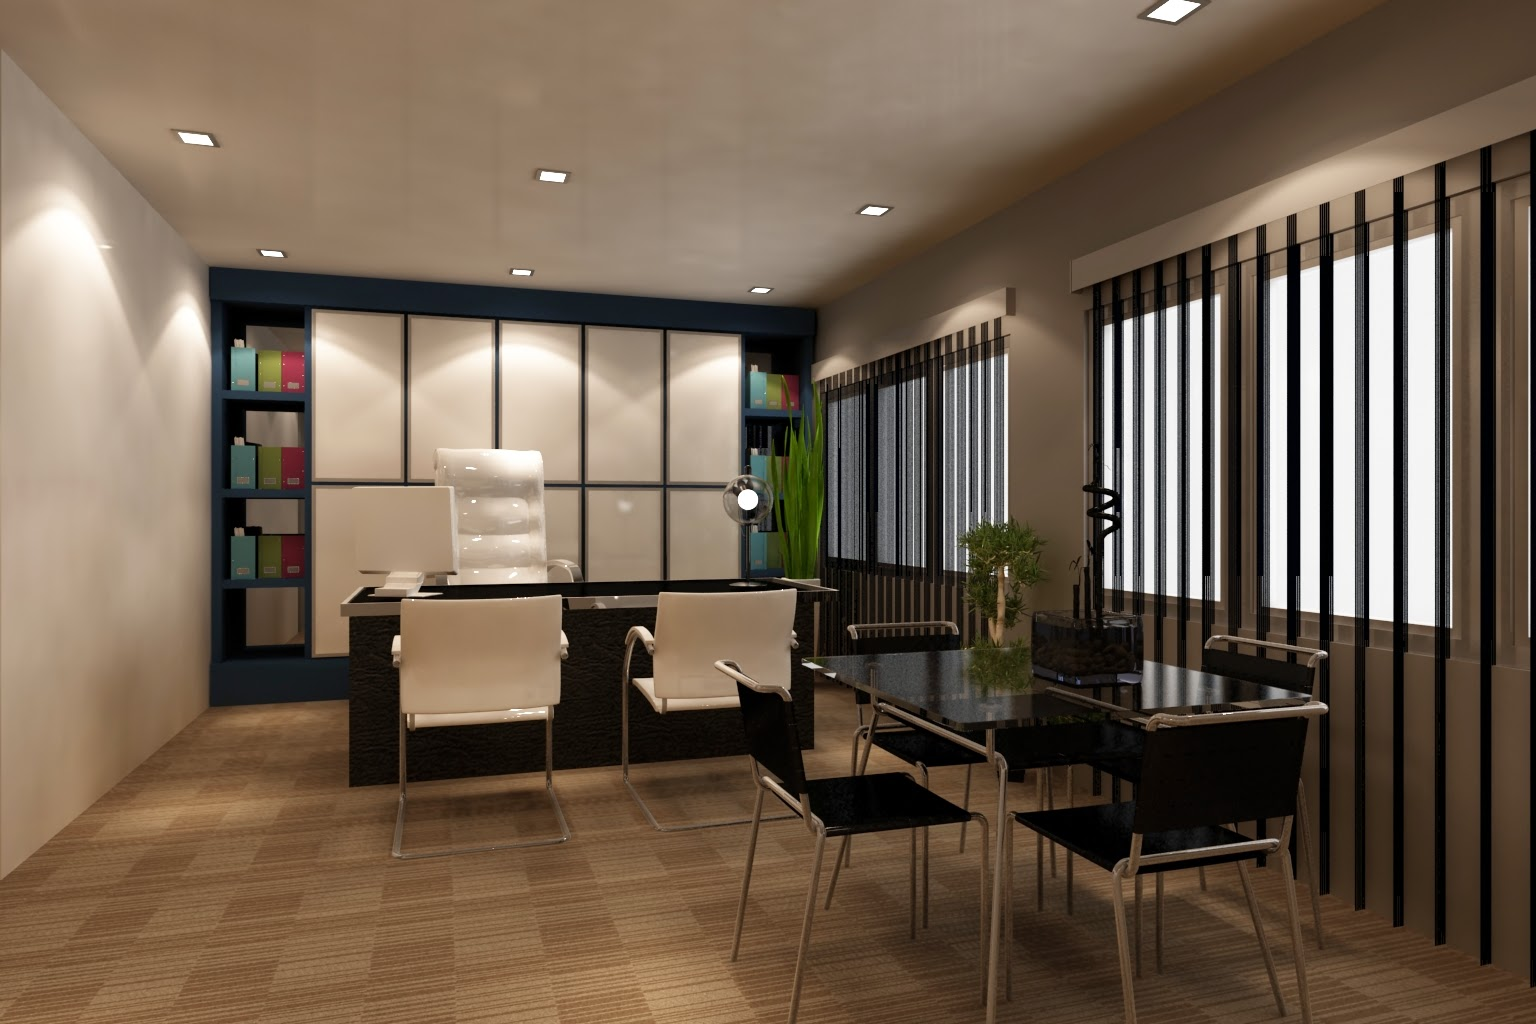 Foundation dezin decor office space in 3d model for Free 3d office design software